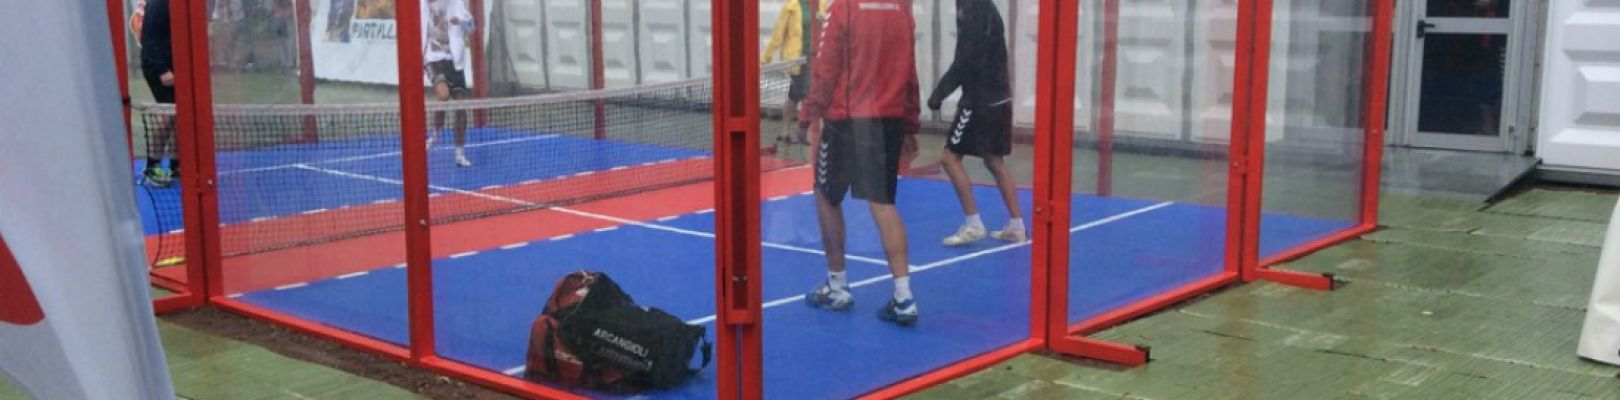 Youth Soccer/handball Tournament Göteborg – Padbol Cage + Outdoor Hard Court Sports Floor